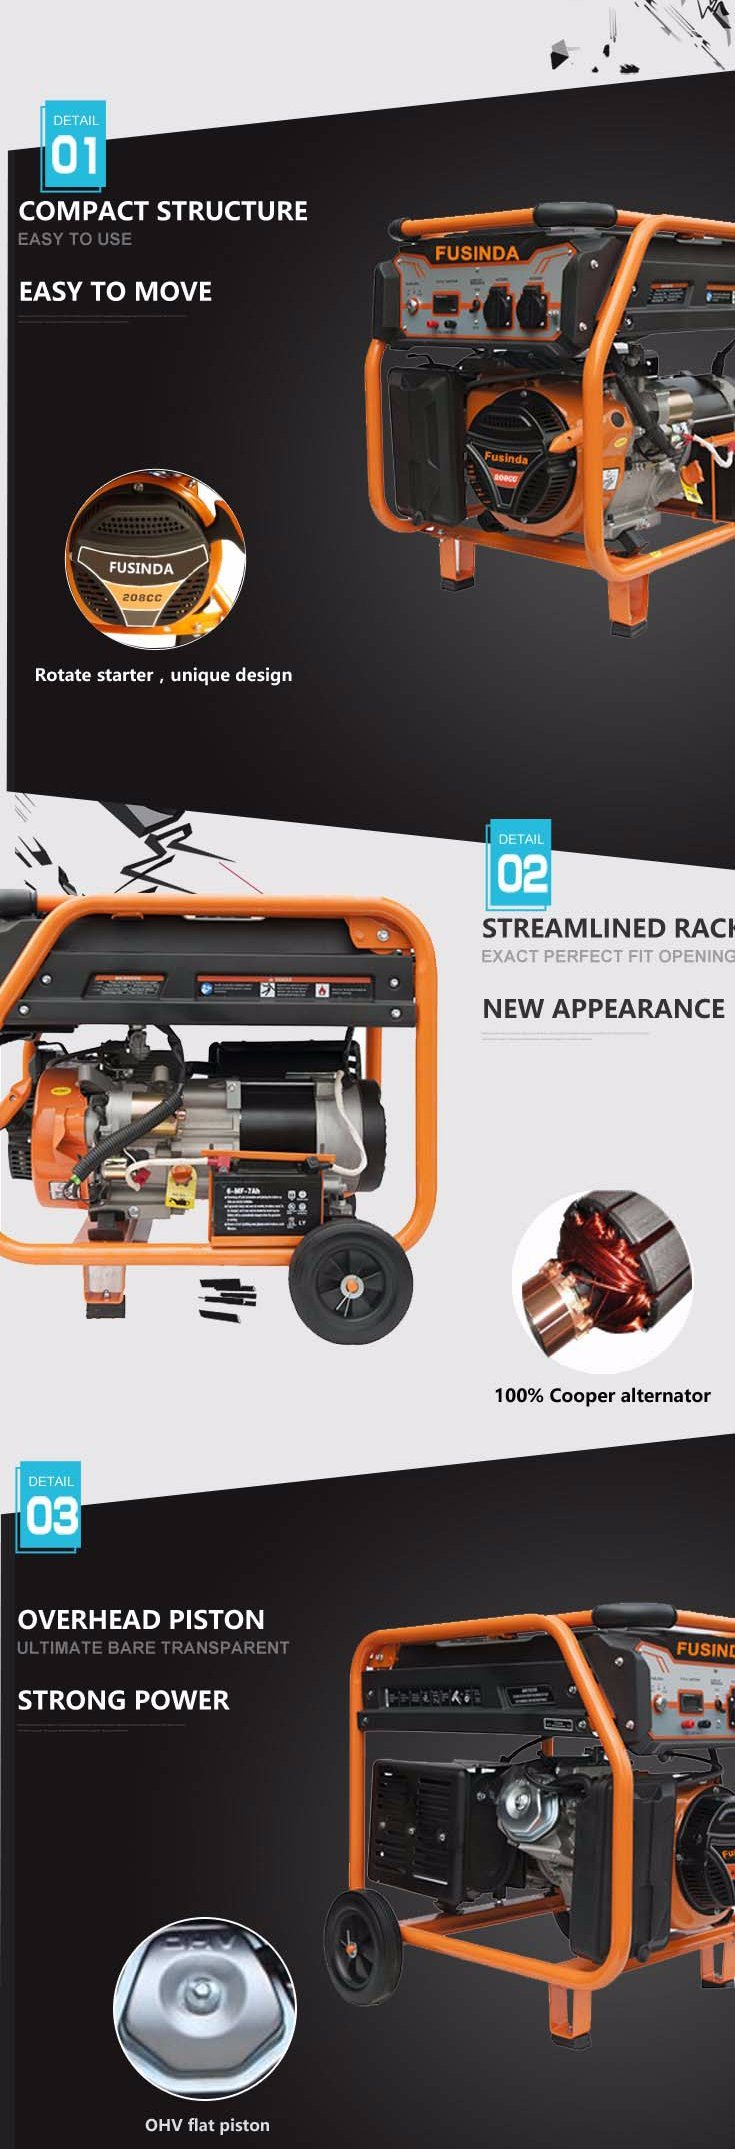 3 kVA Portable Gasoline Generator with Key Starter